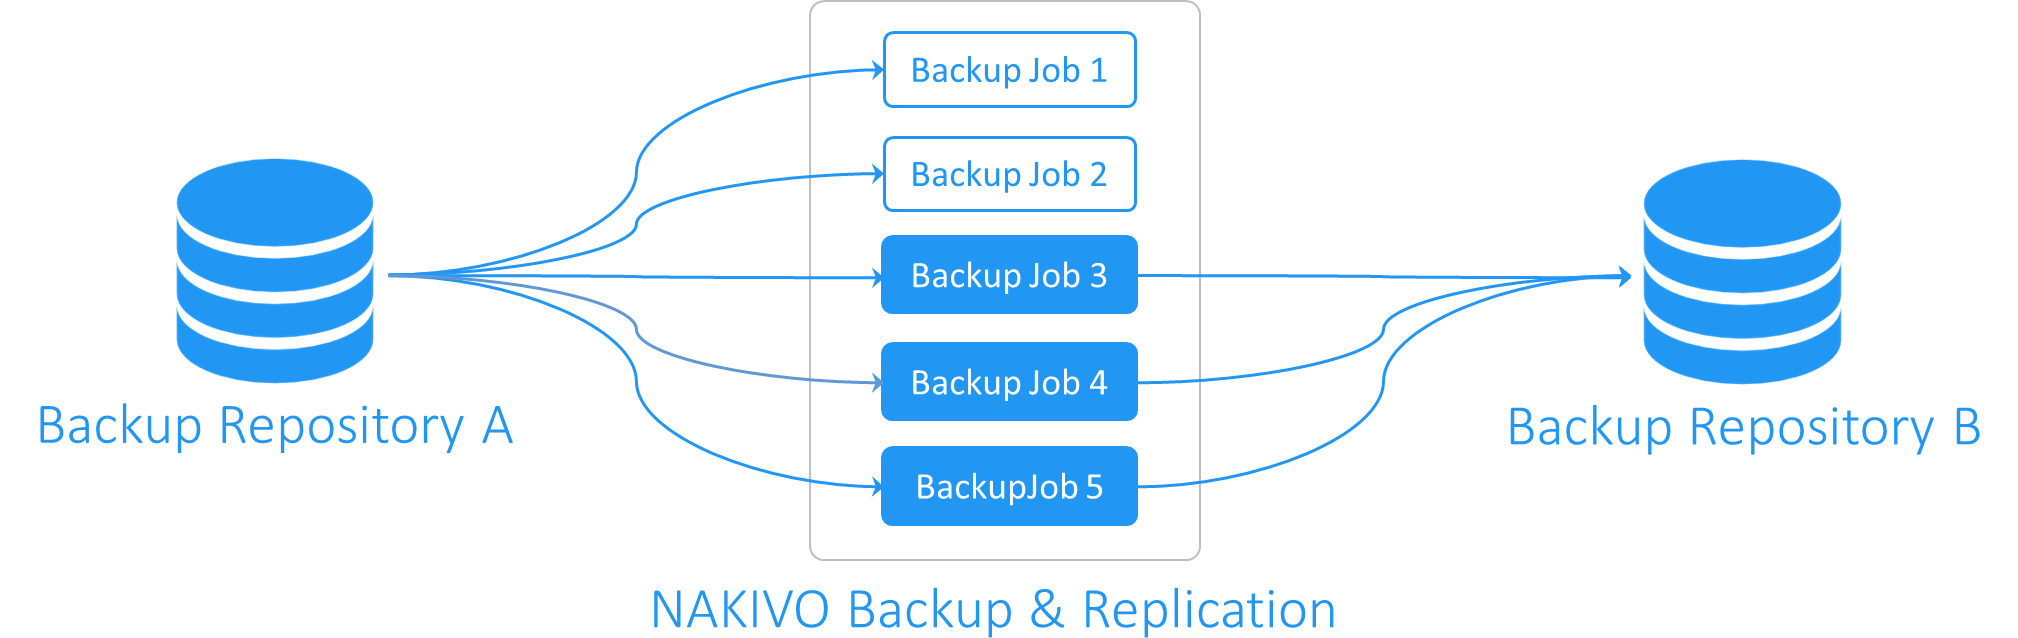 Backup copy for selected jobs